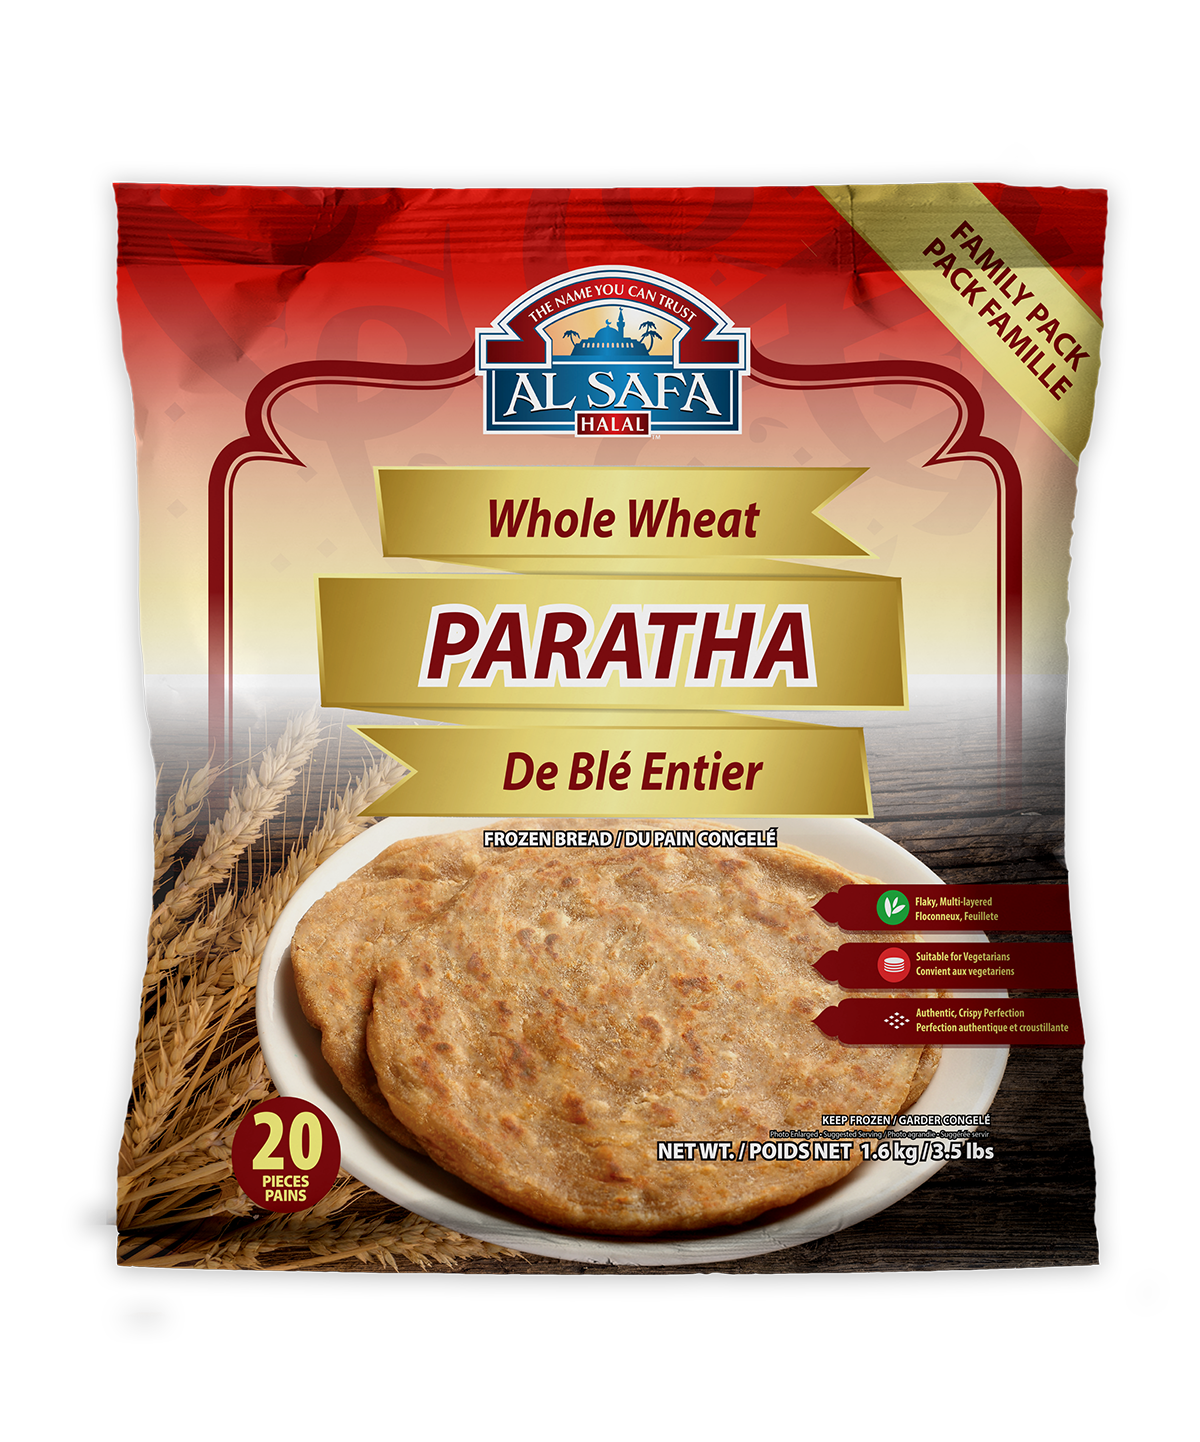 AL SAFA WHOLE WHEAT PARATHA 20 pcs